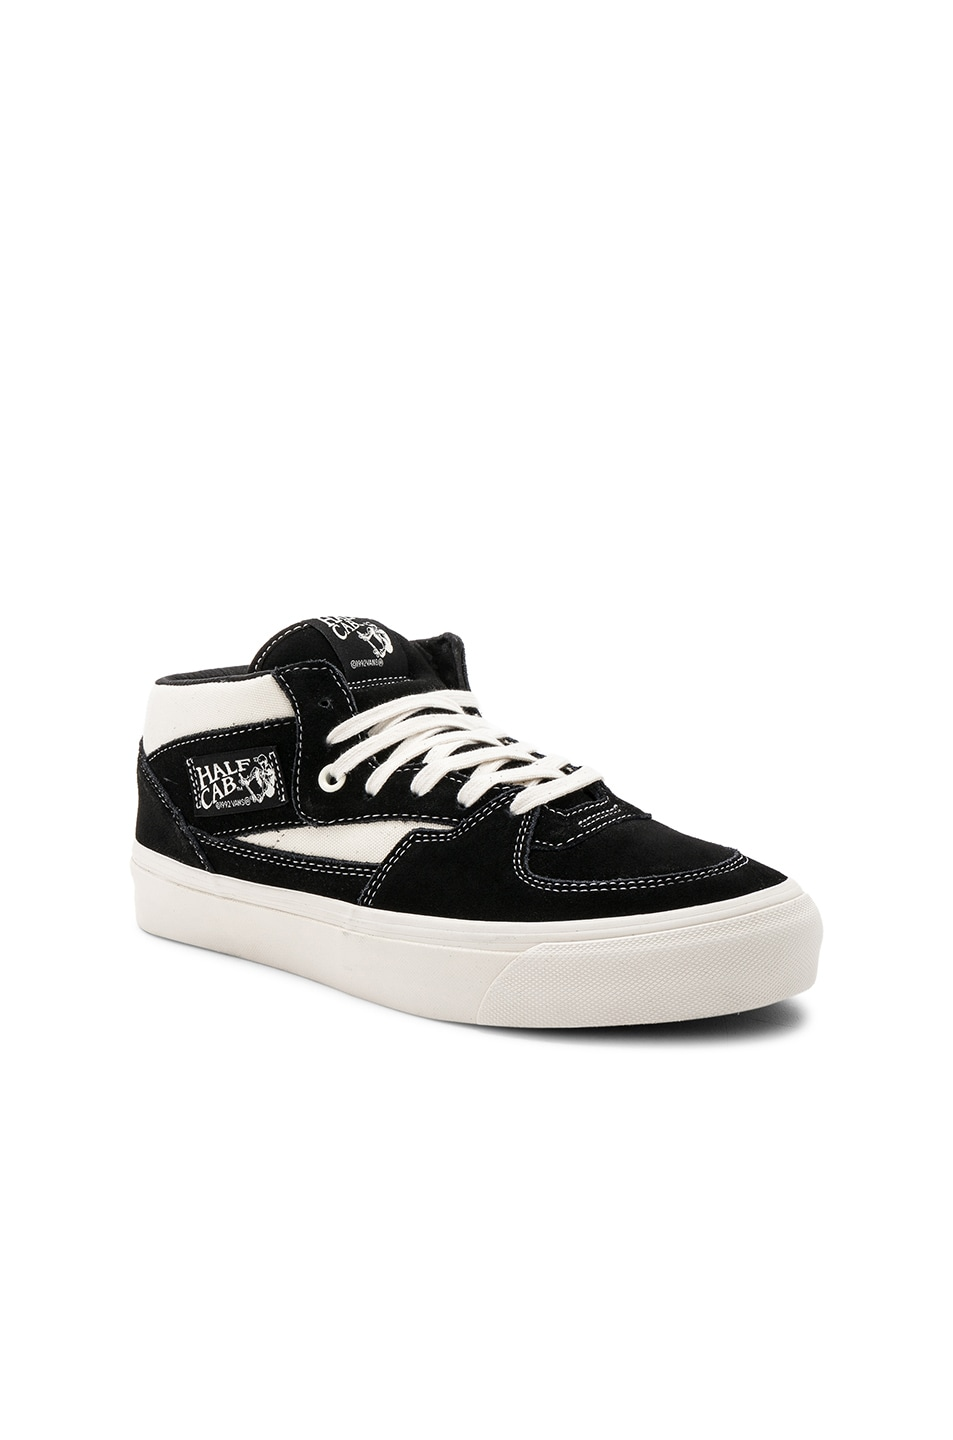 0004029ad4 Image 1 of Vans Vault OG Half Cab LX in Black   Marshmallow